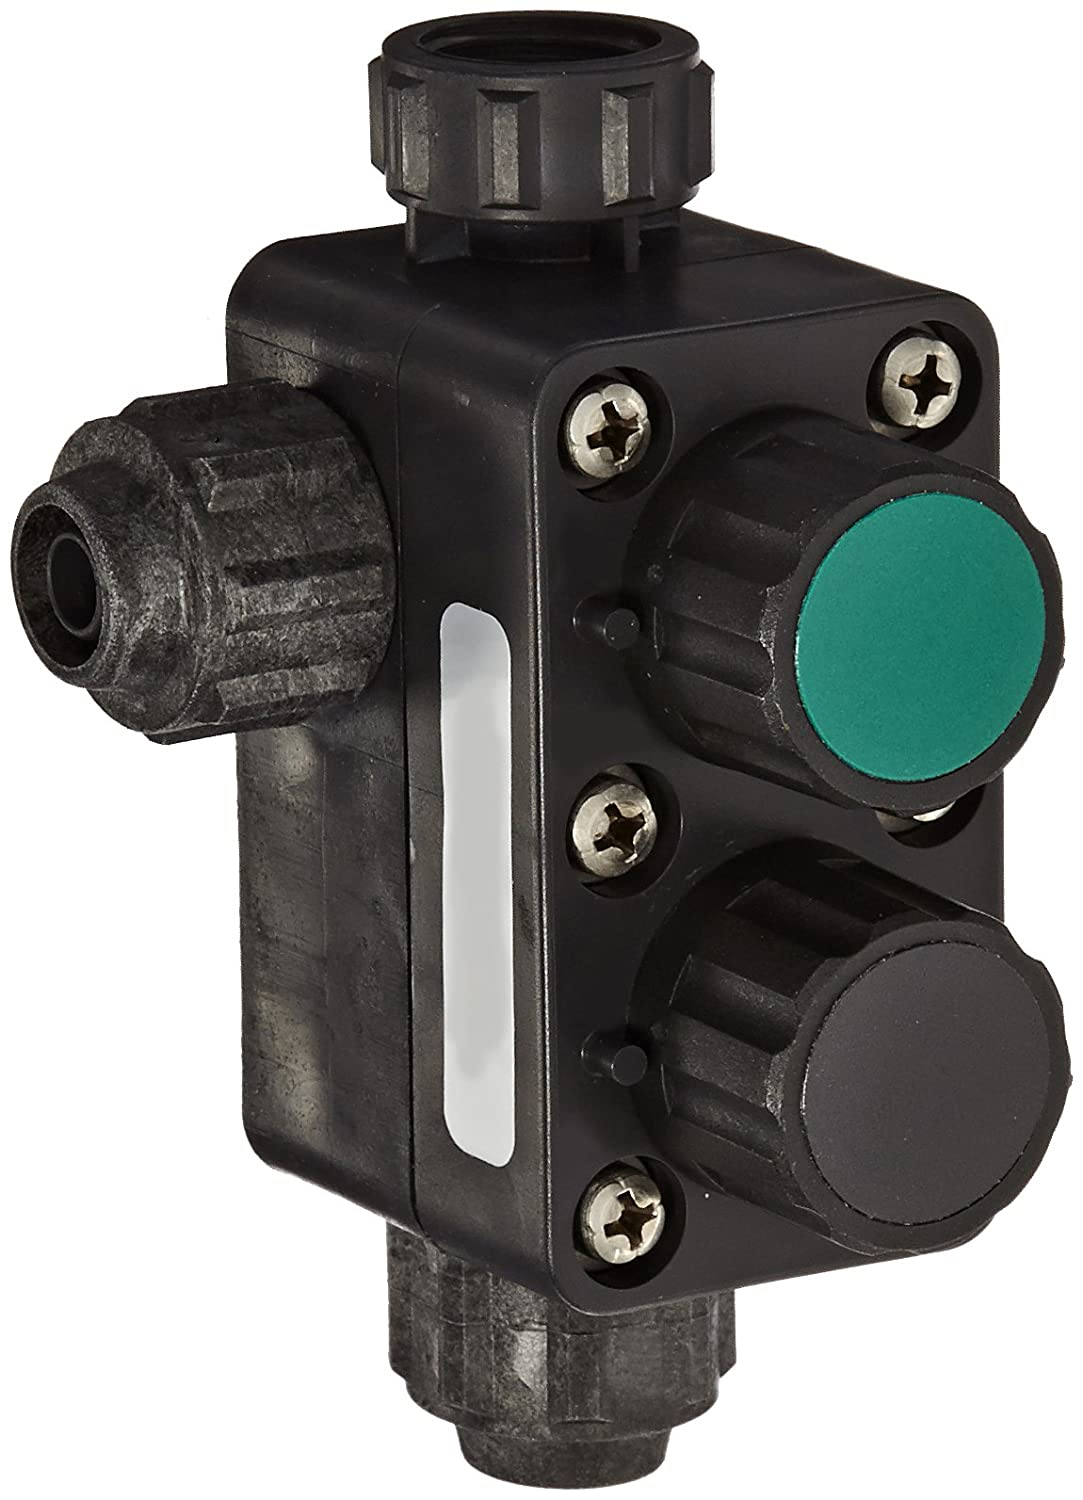 Pulsafeeder L380FT03-PVD 5 Function Pump Valve, 150 psi, 1/2 by Pulsafeeder B00APD1H3G